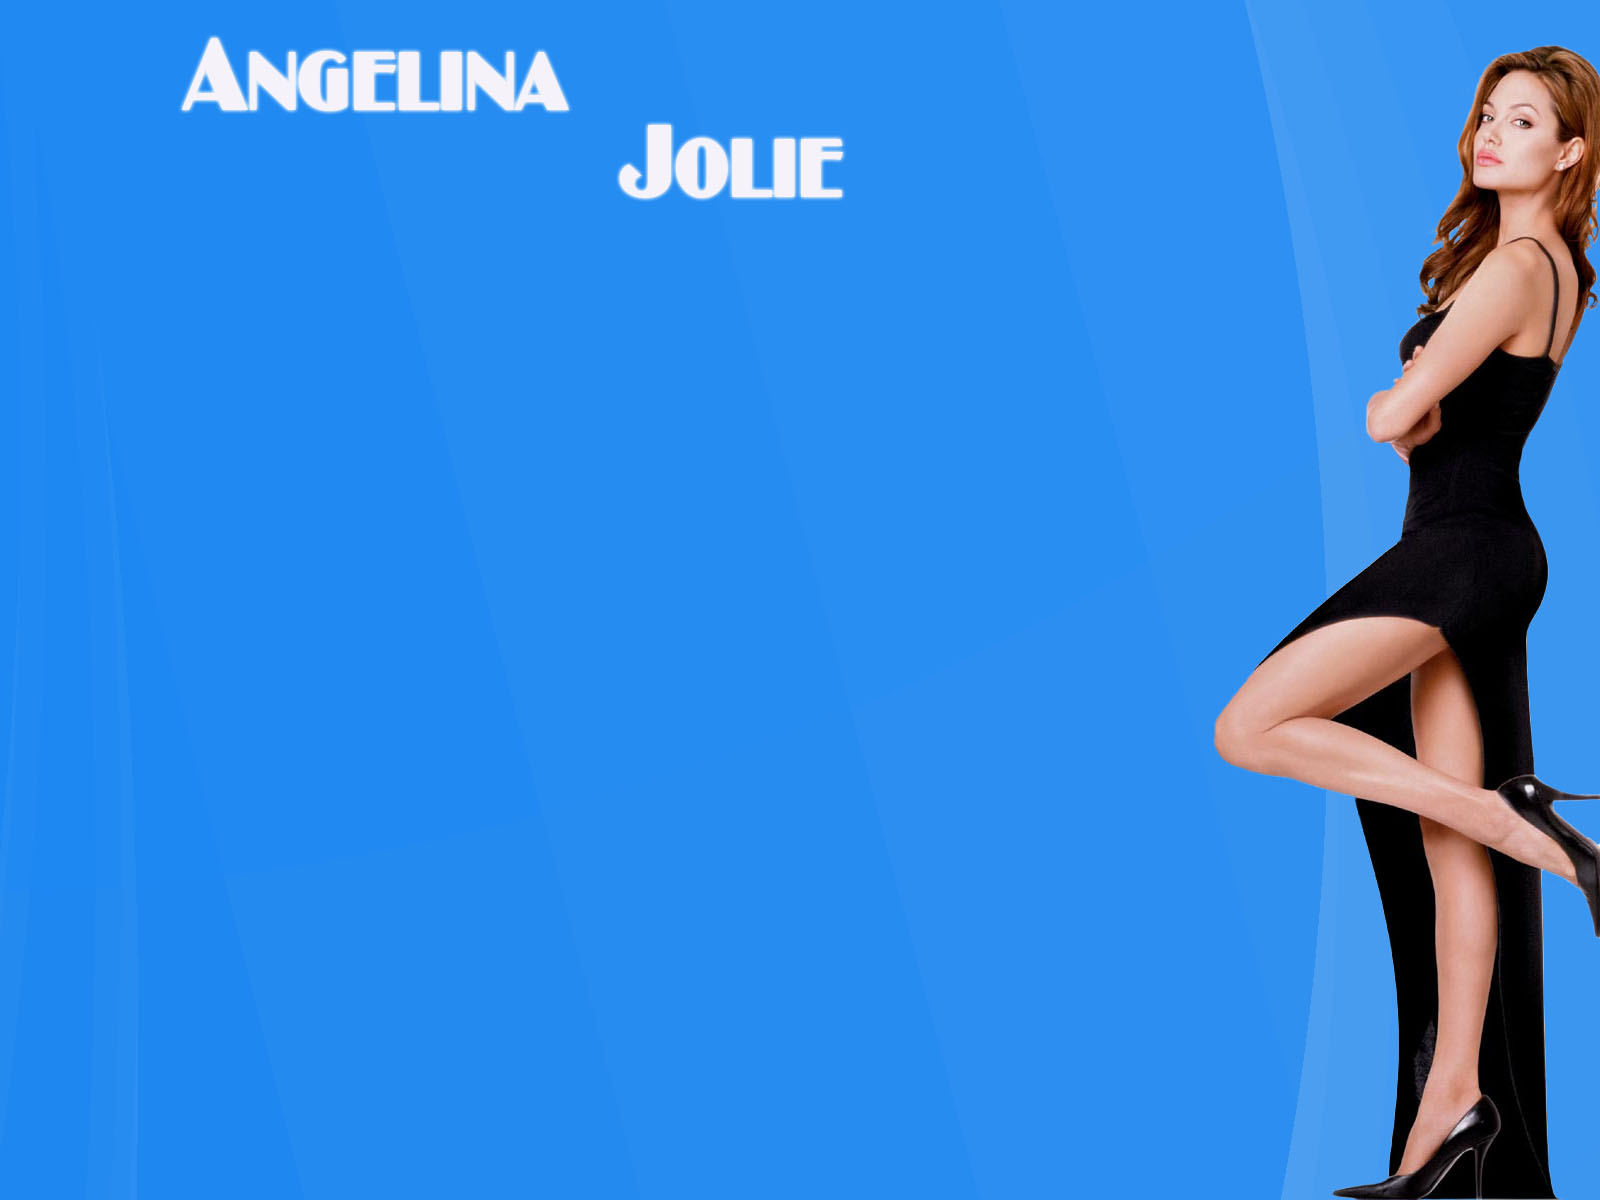 Celebrity Wallpaper Free HD Backgrounds Images Pictures Angelina Jolie